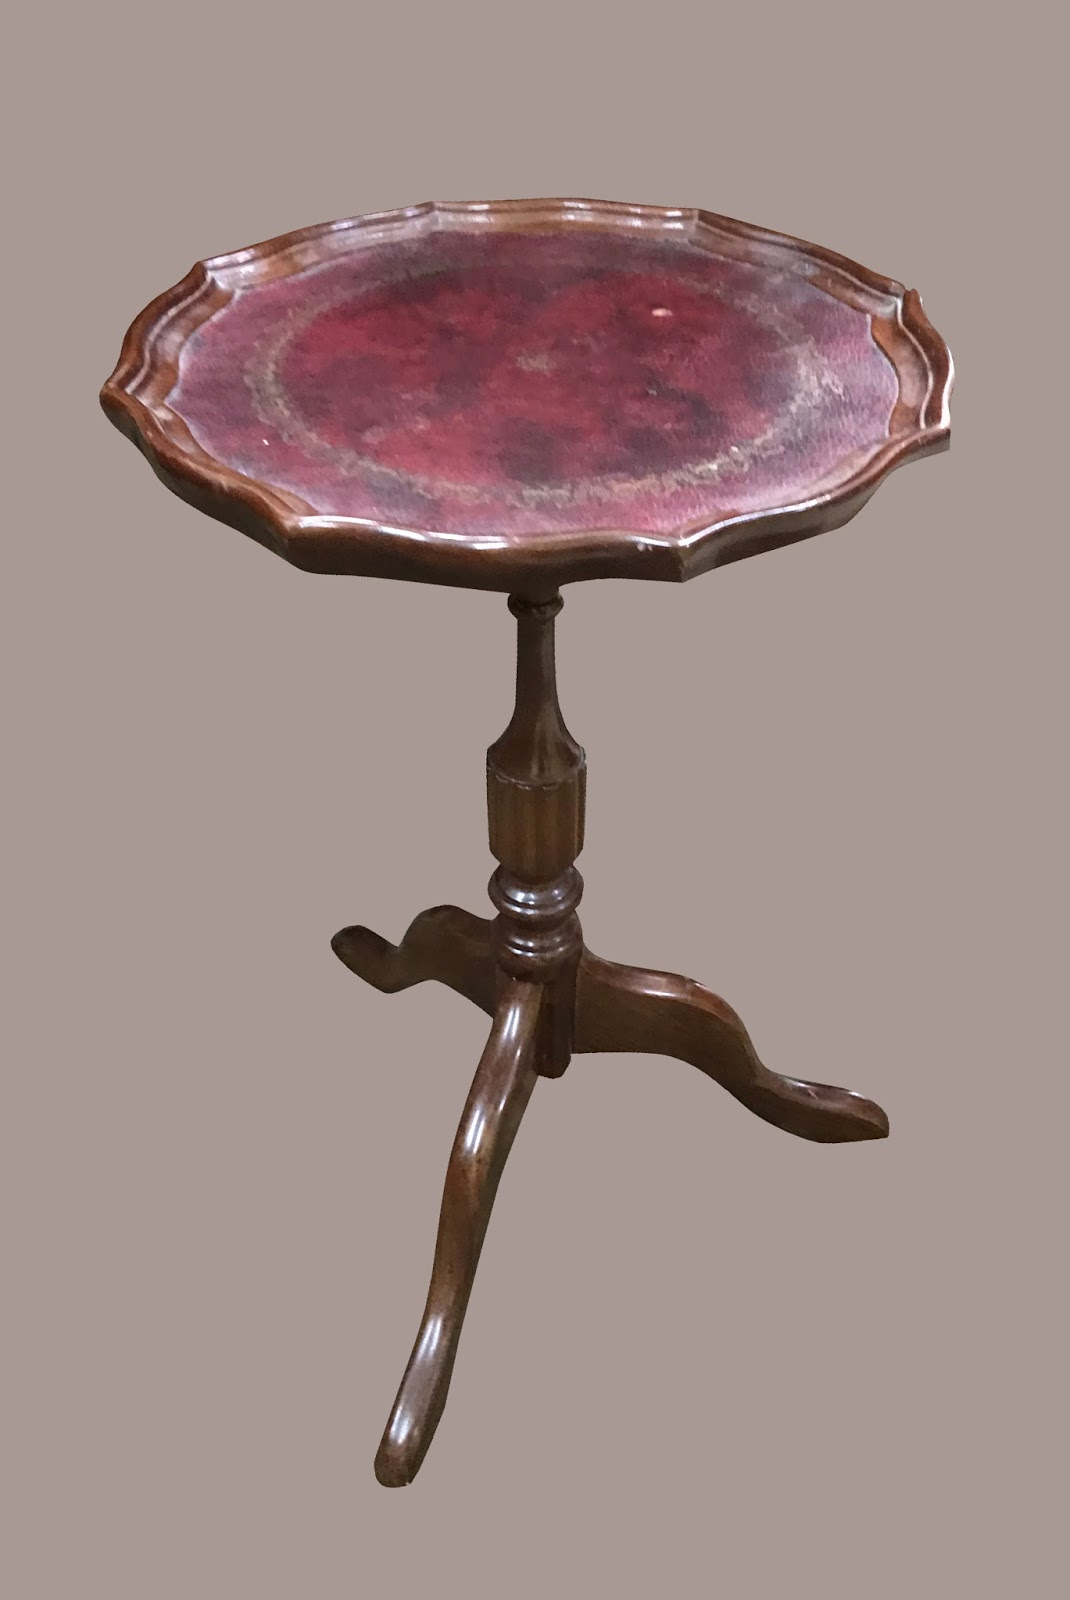 Uhuru Furniture & Collectibles: Very Small Accent Table